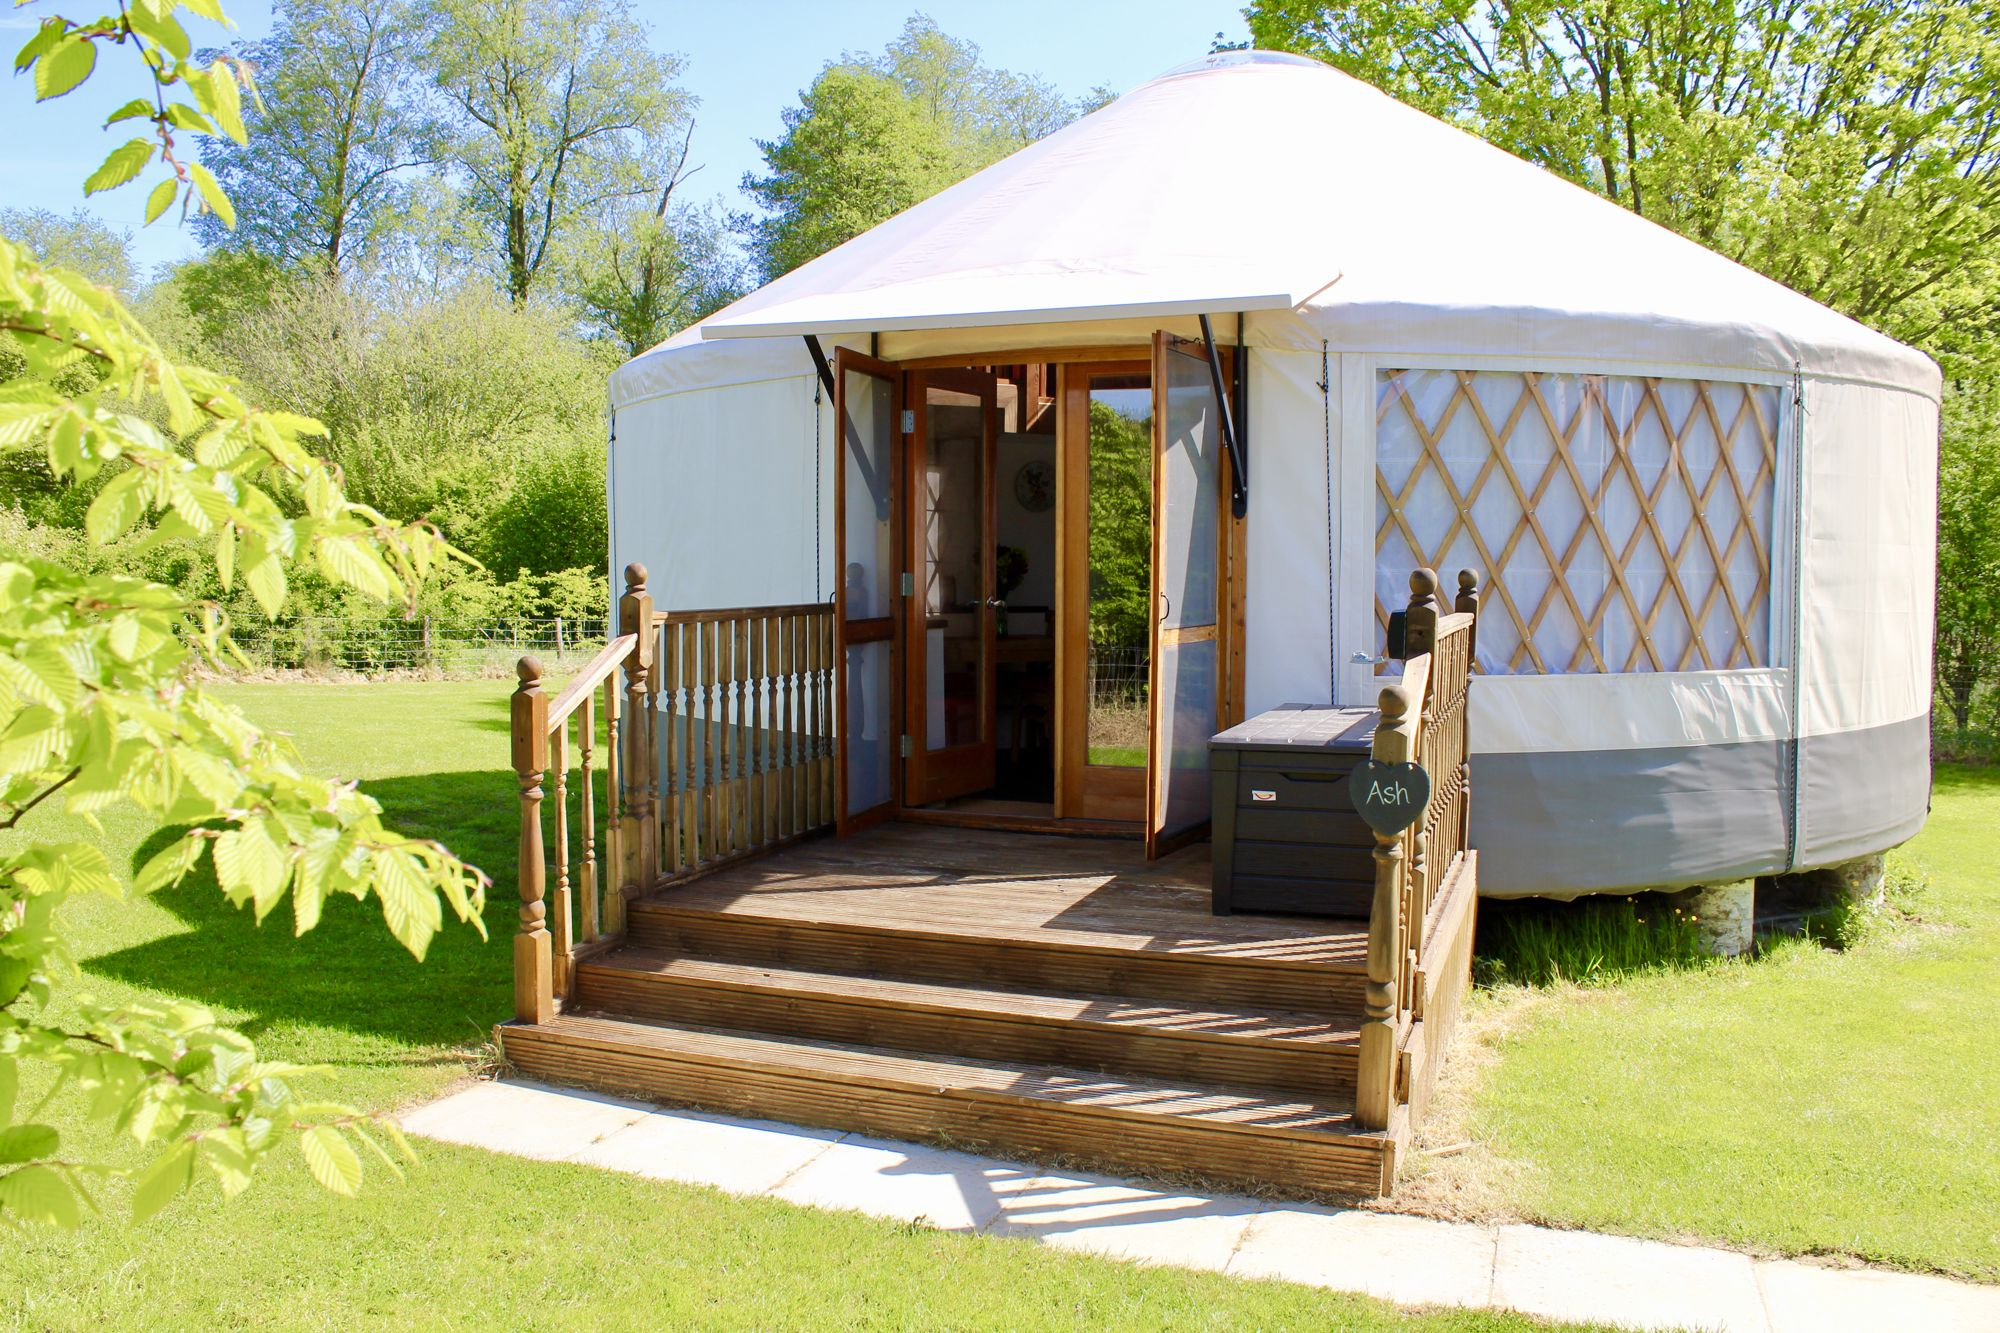 Campsites in Uckfield holidays at Cool Camping